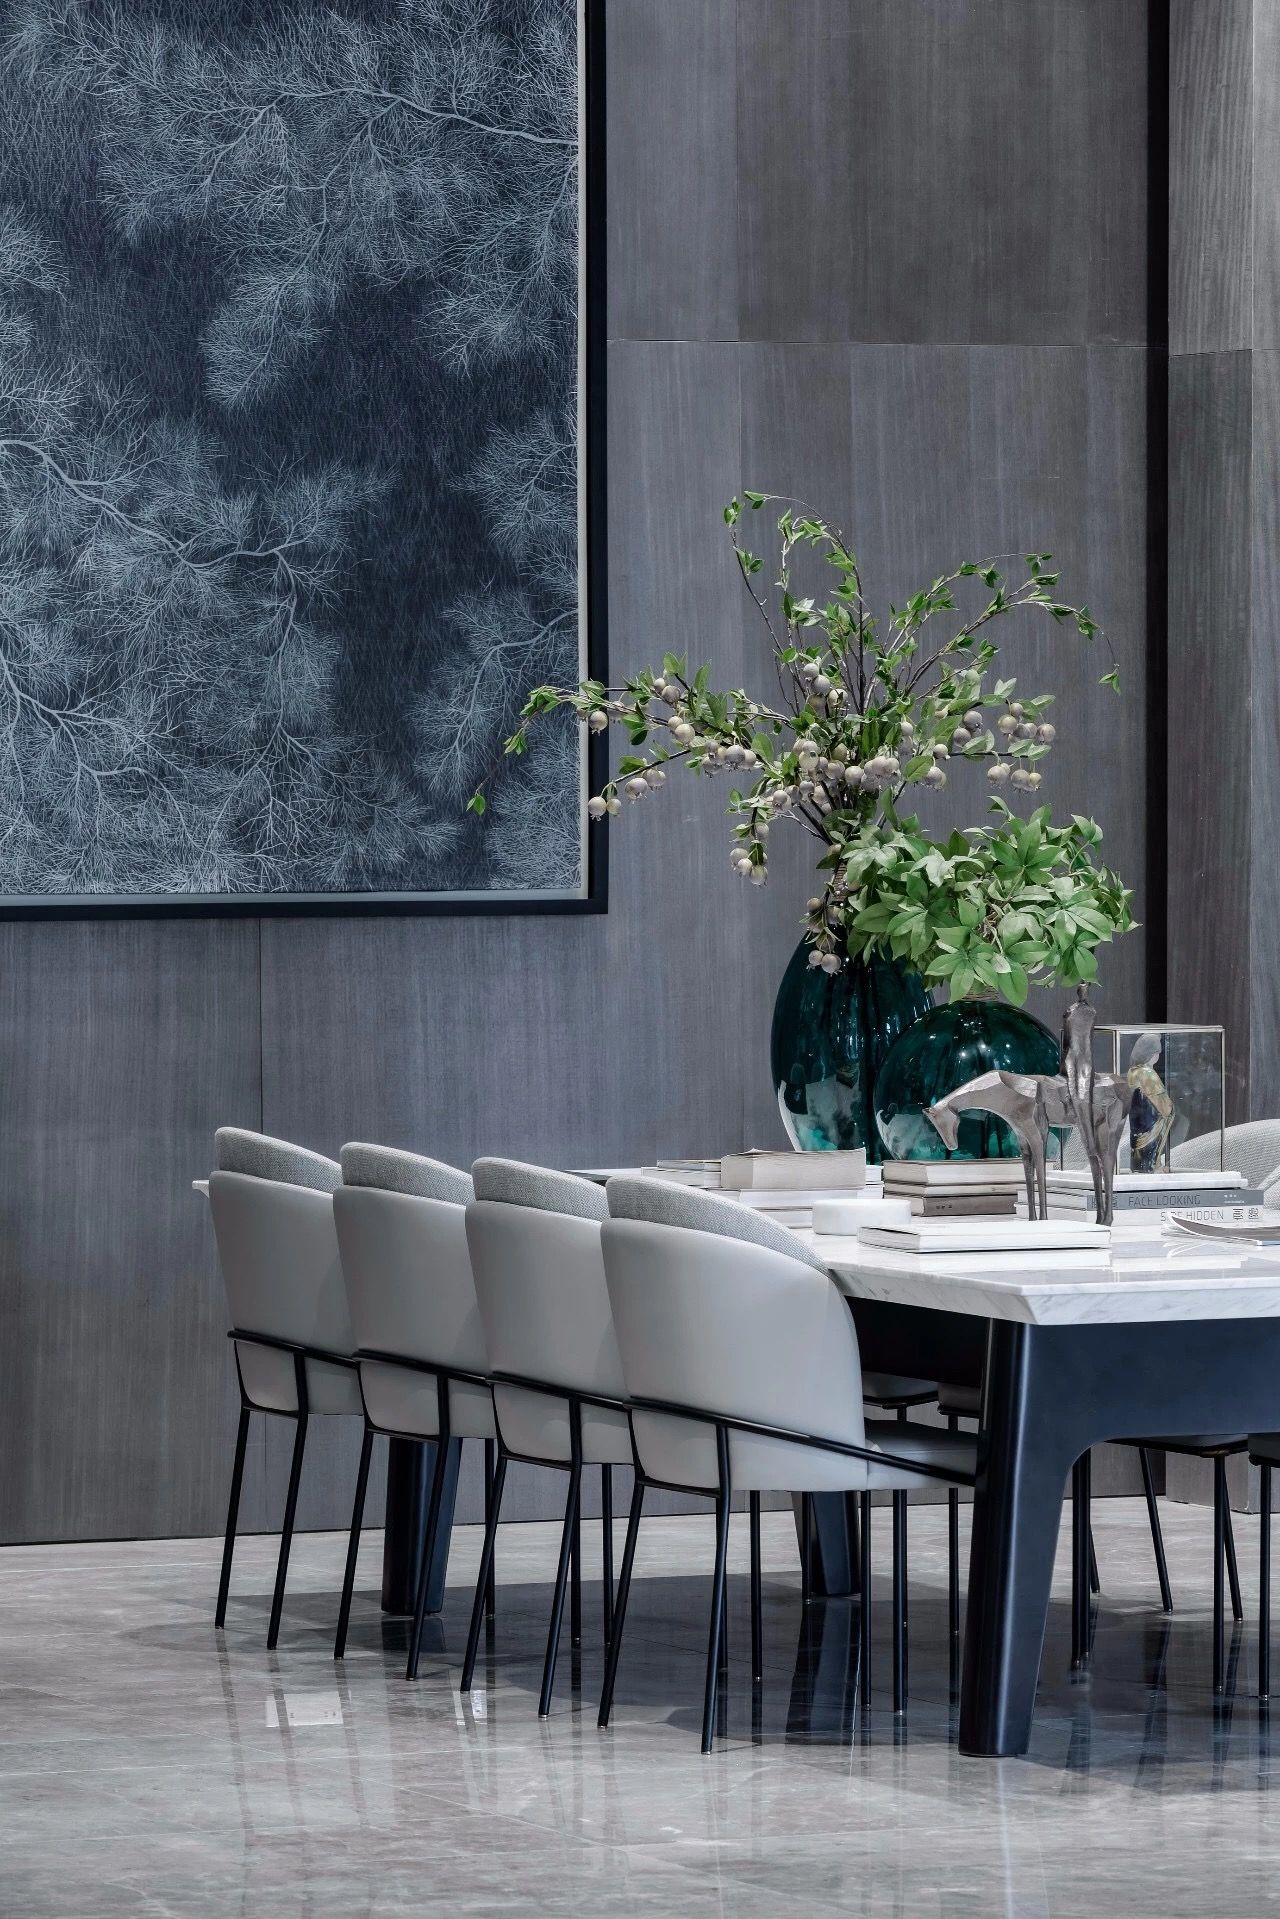 Dining Room Design Ideas While There Is No Extra Lighting On The Table The Brighter Color Gives The Minimalist Dining Room Luxury Dining Room Luxury Dining